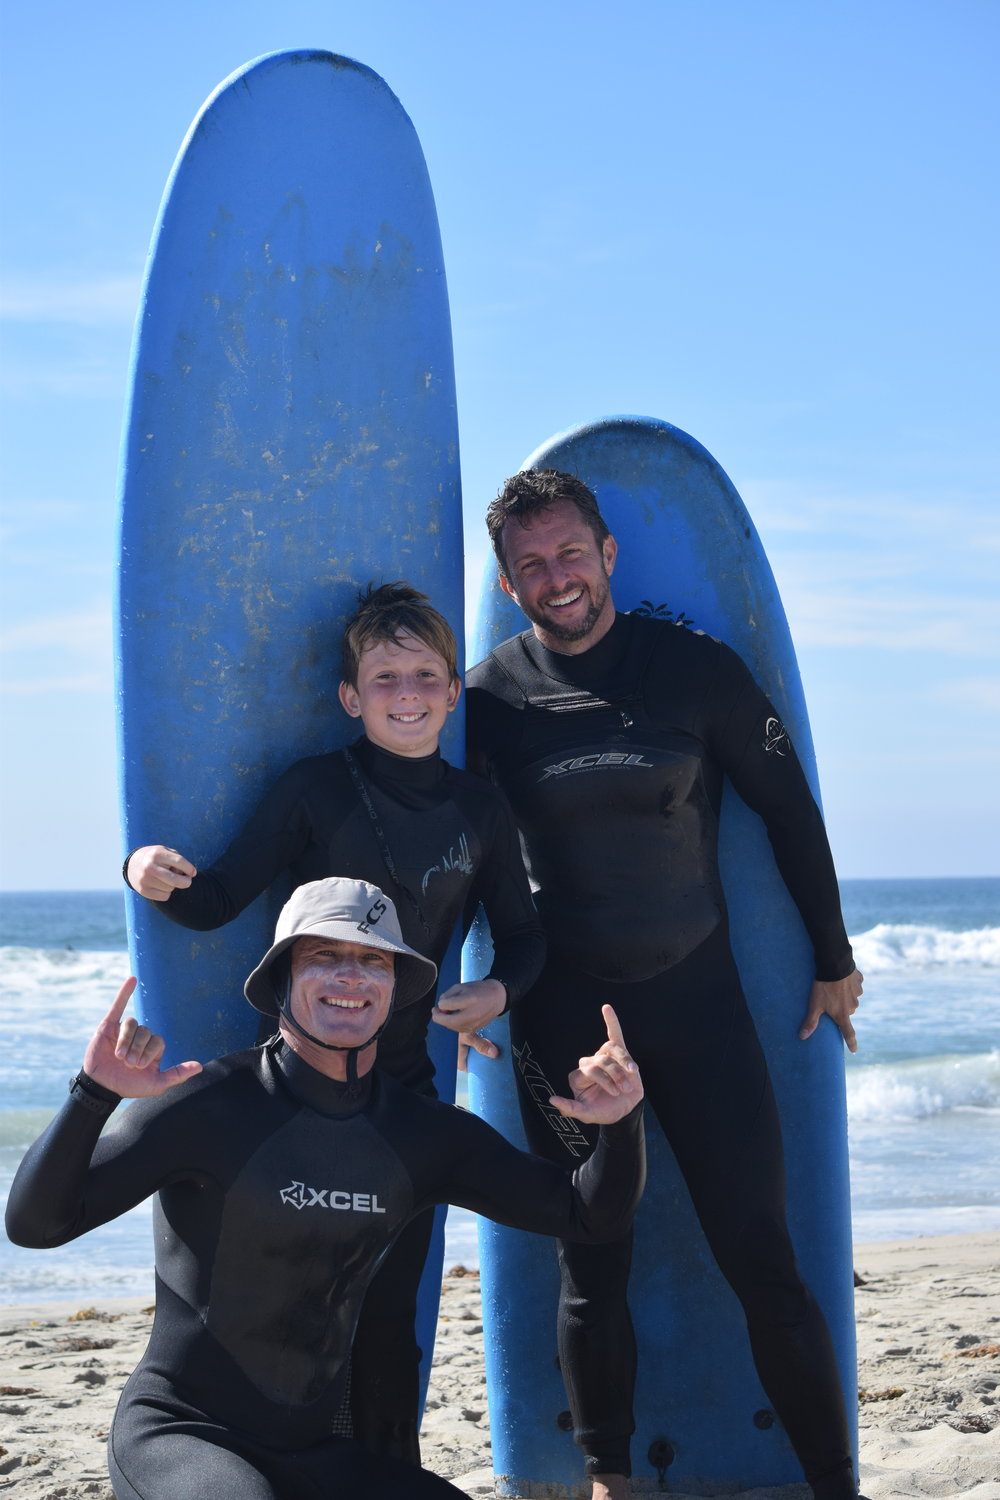 Get Pitted Surfing Lessons= Ultimate Family Fun Event in OC!